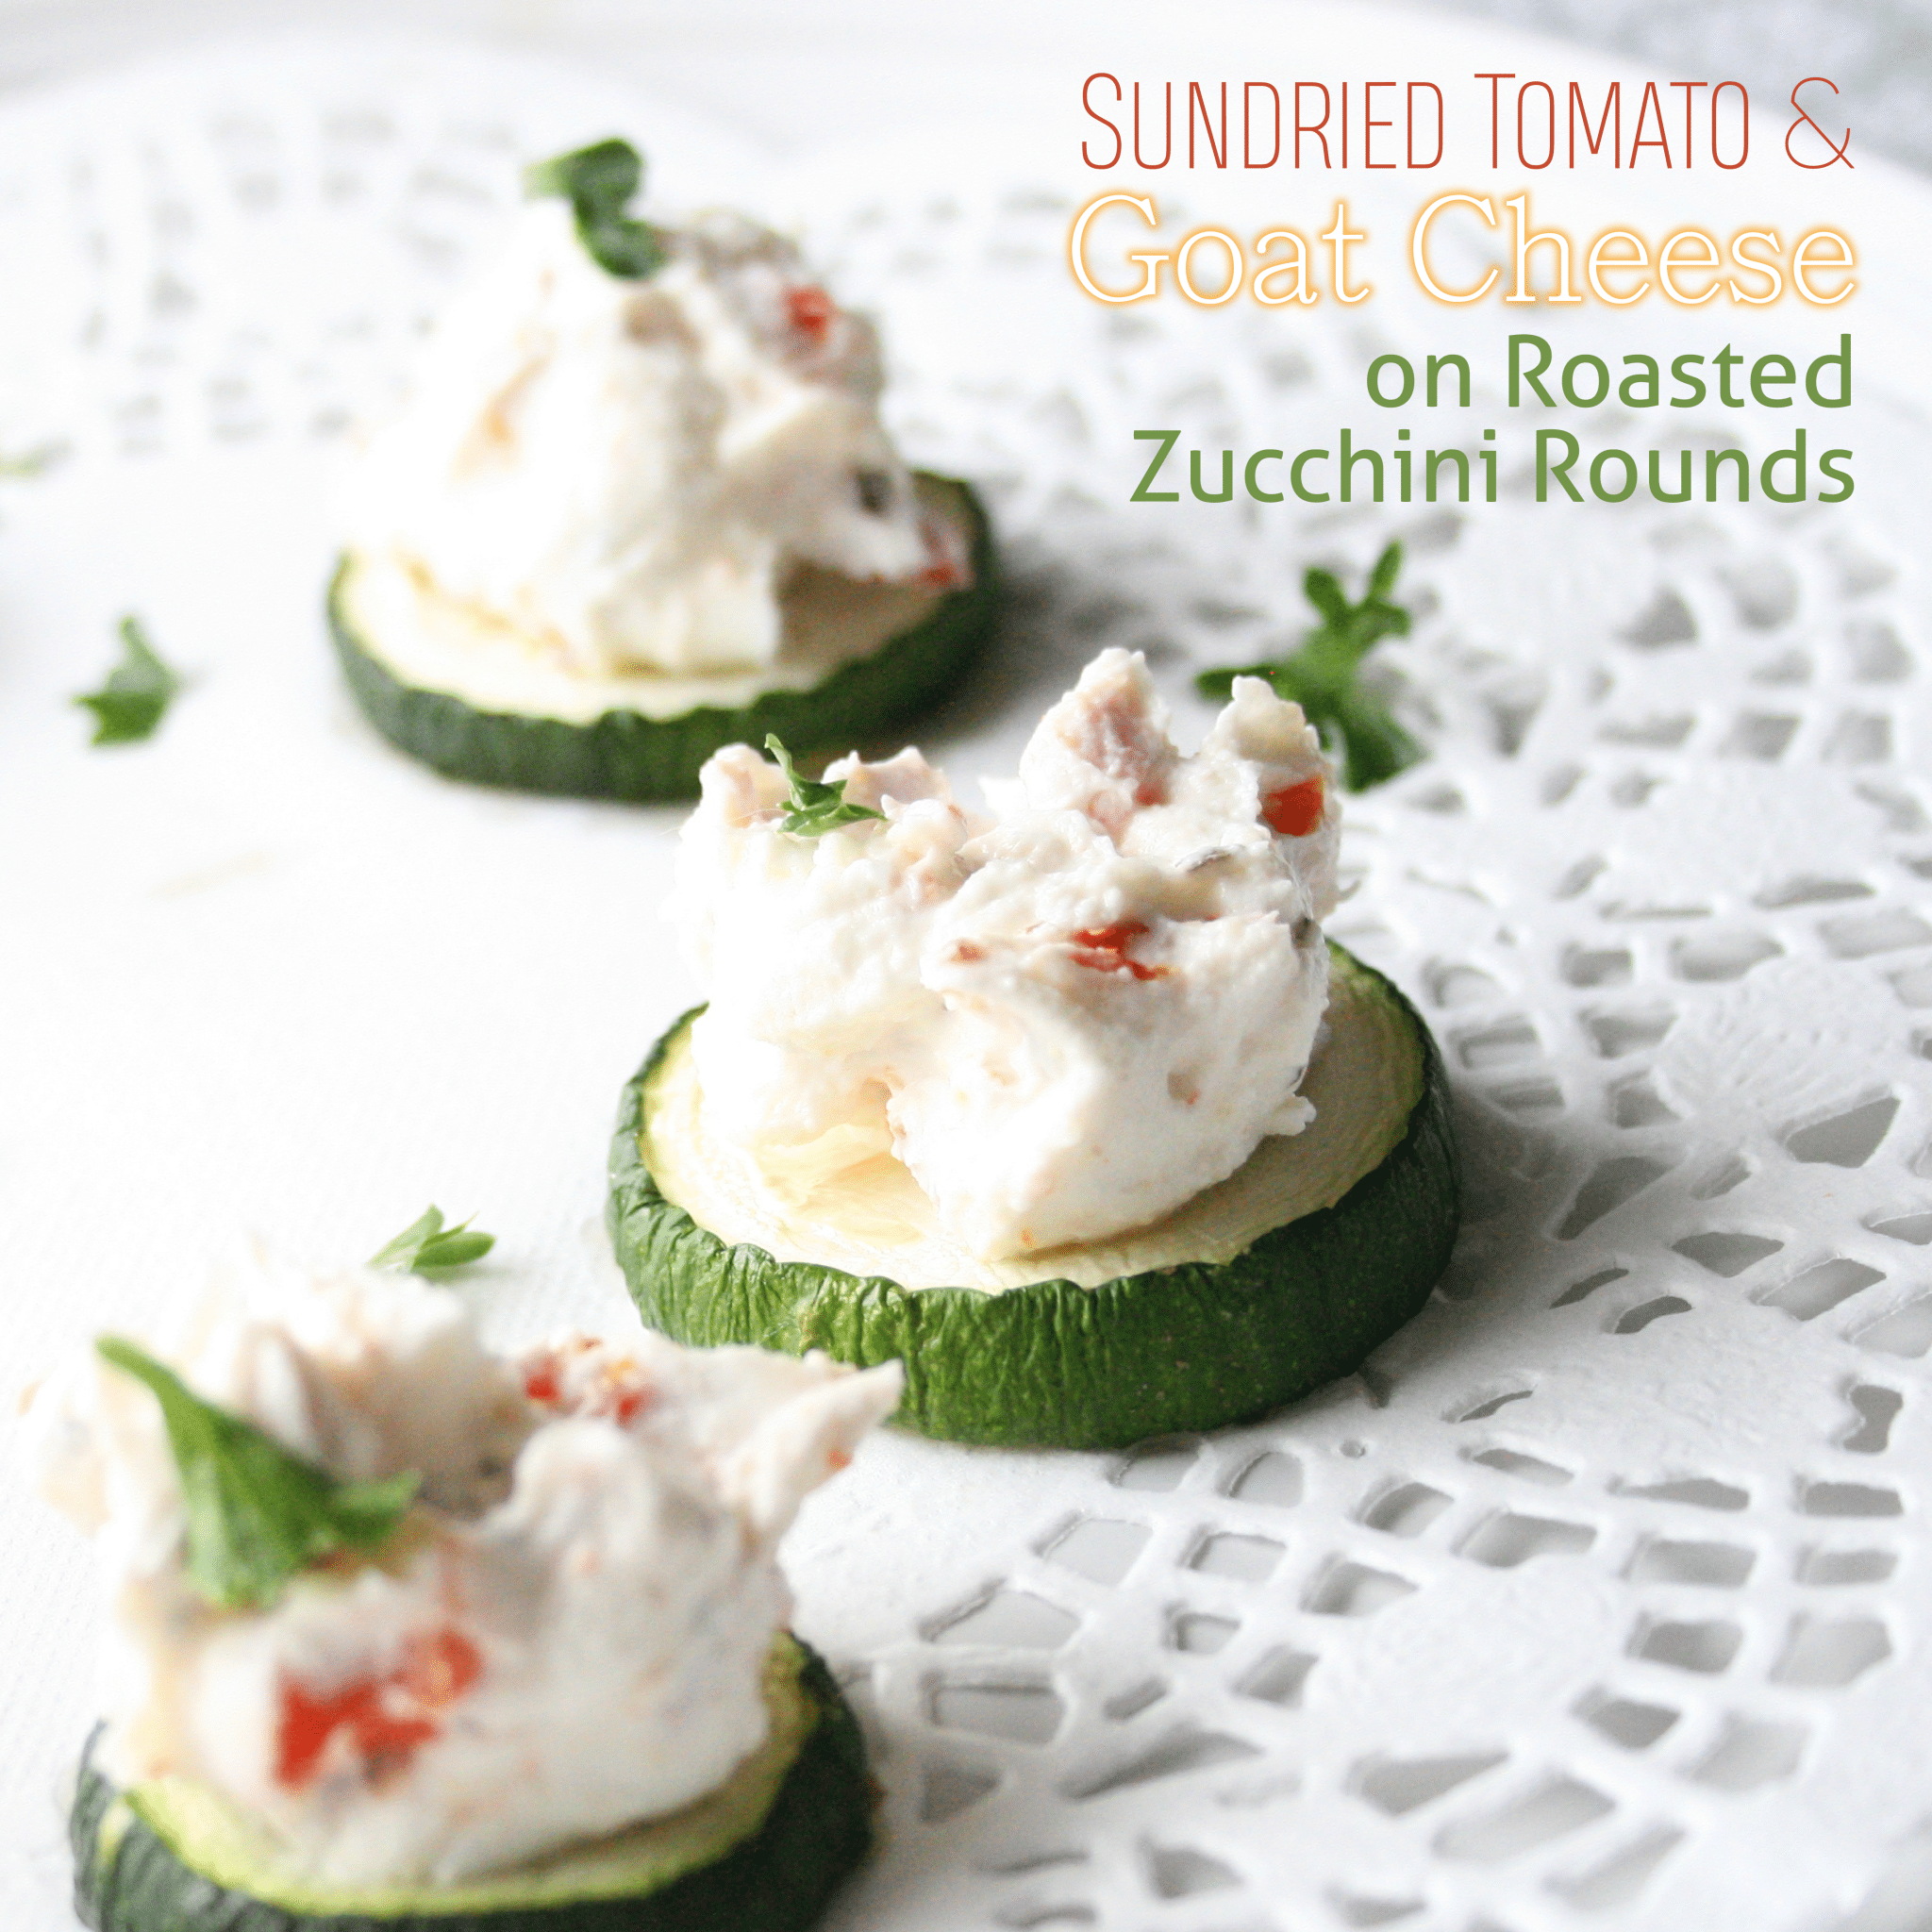 Sundried Tomato and Goat Cheese on Roasted Zucchini Rounds